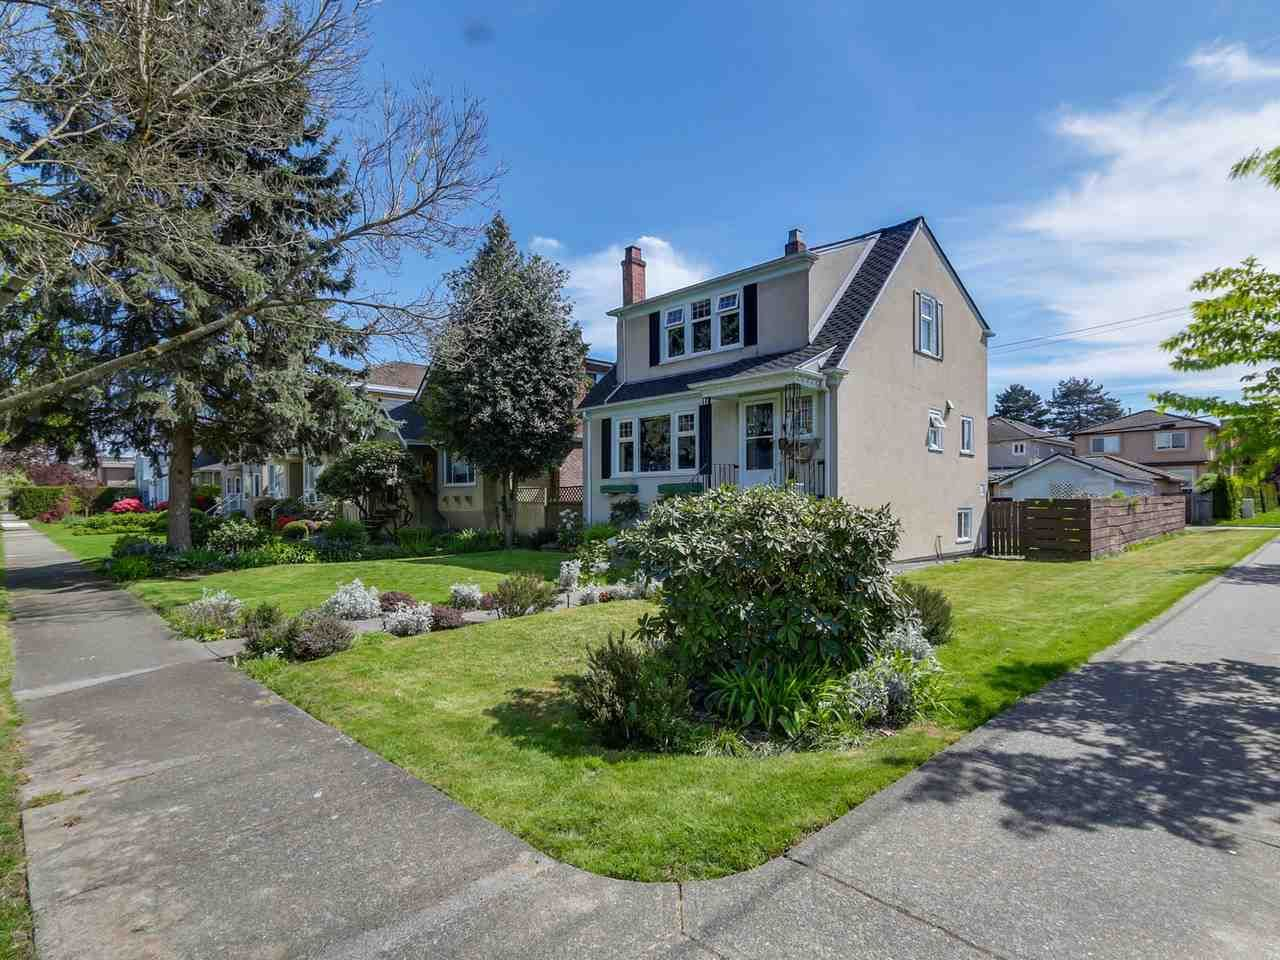 Photo 4: Photos: 2796 W 21ST Avenue in Vancouver: Arbutus House for sale (Vancouver West)  : MLS®# R2078868